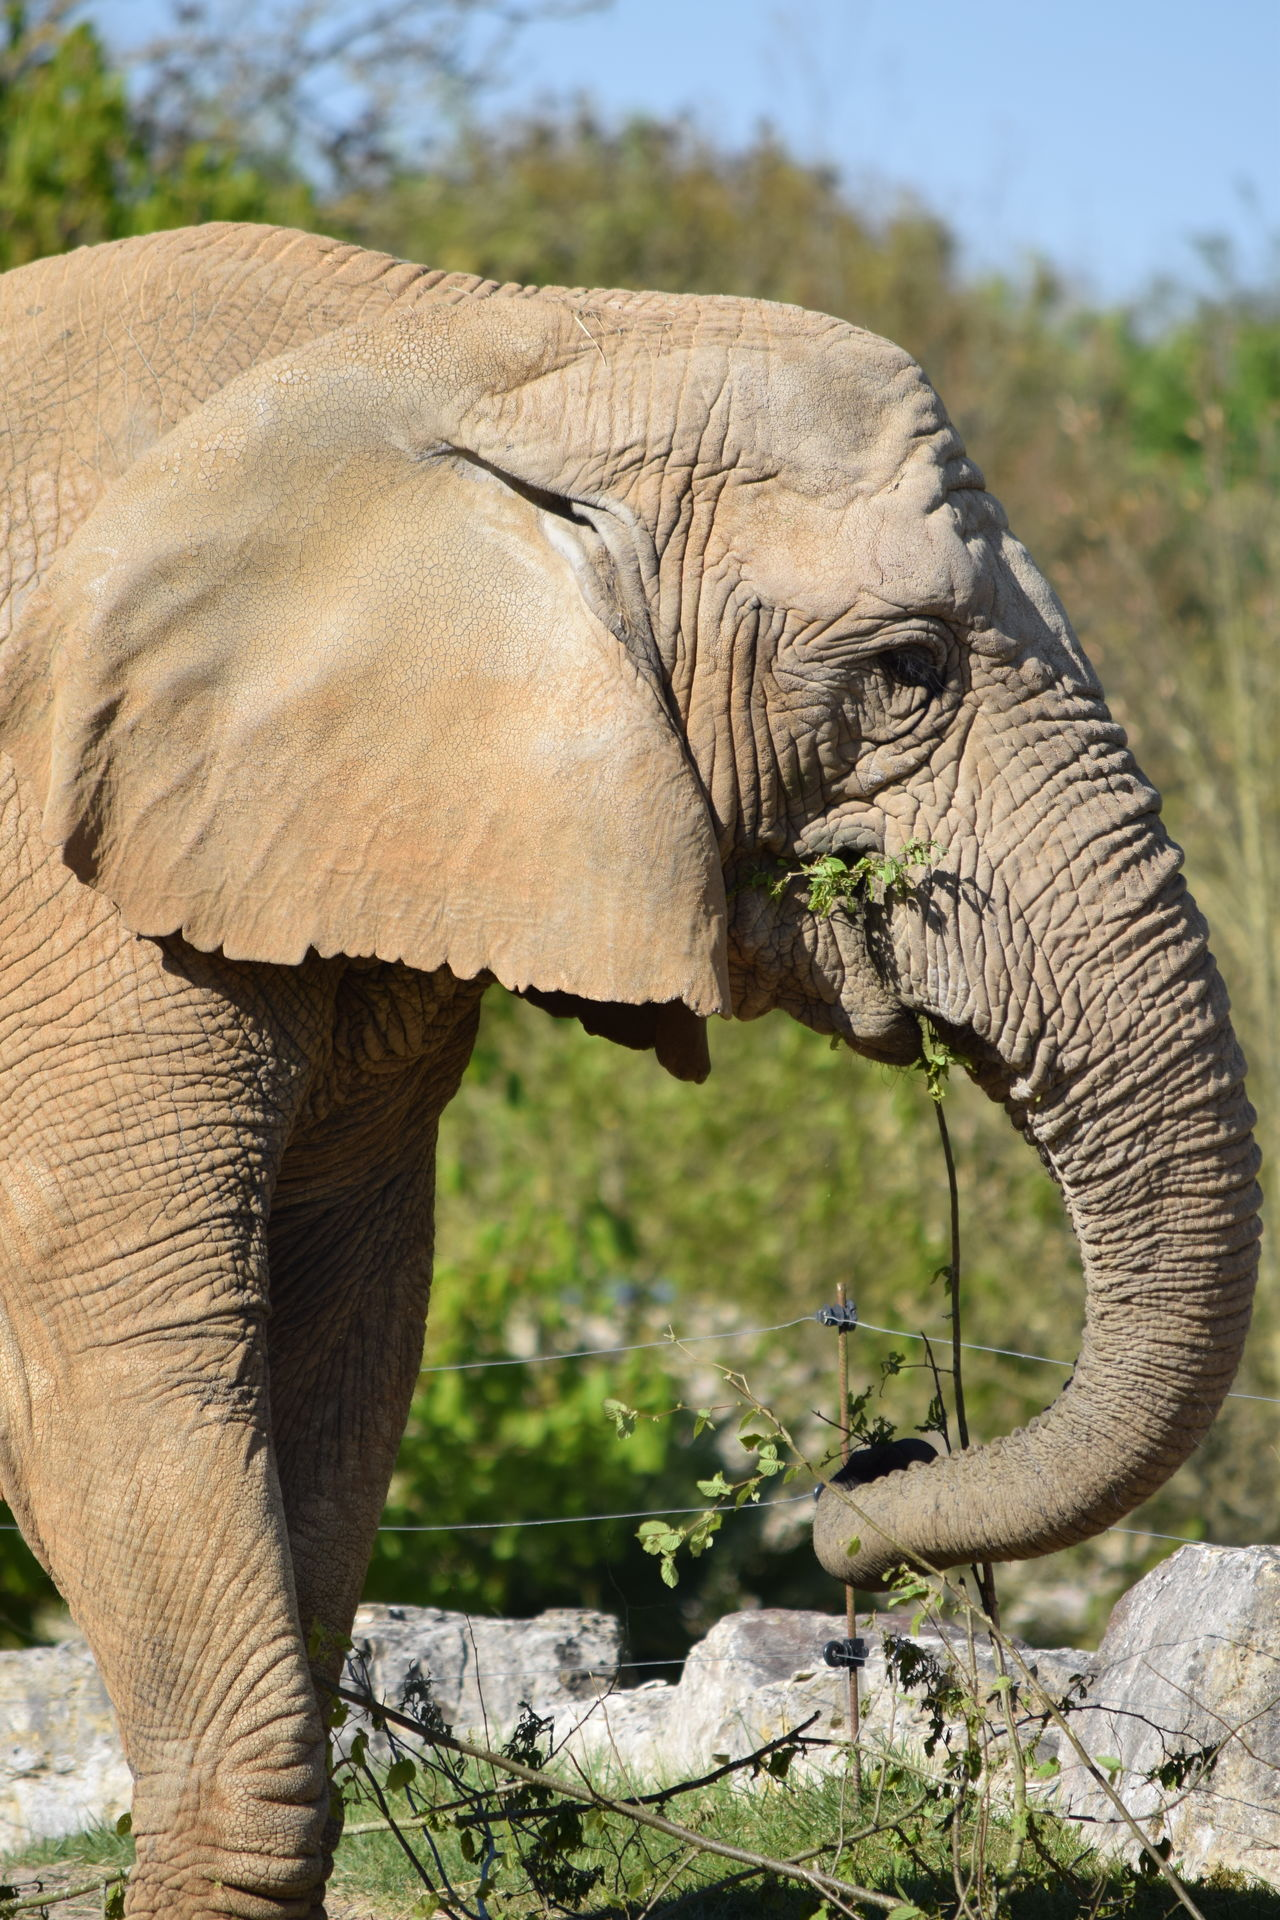 elephant African Elephant Animal Themes Animal Trunk Animal Wildlife Animals In The Wild Close-up Day Elephant Focus On Foreground Mammal Nature No People One Animal Outdoors Safari Animals Side View Tusk